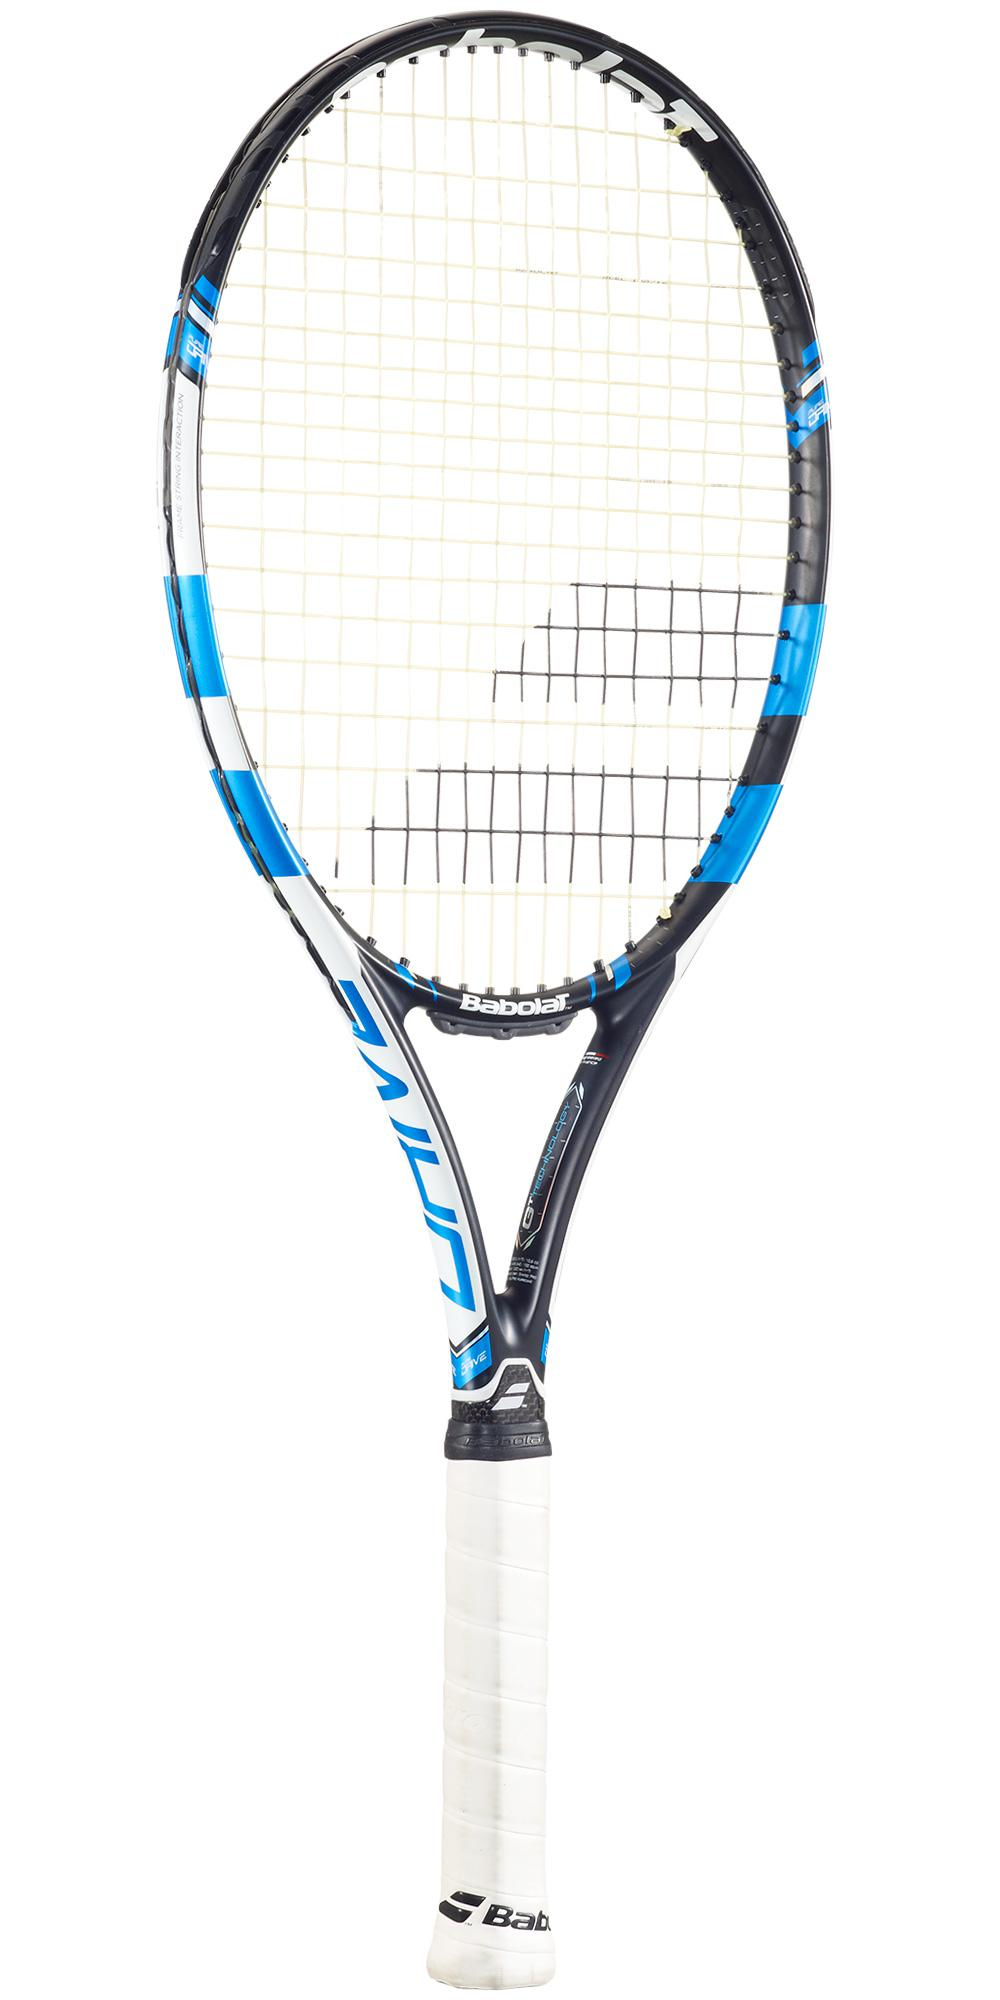 babolat pure drive tennis racket. Black Bedroom Furniture Sets. Home Design Ideas